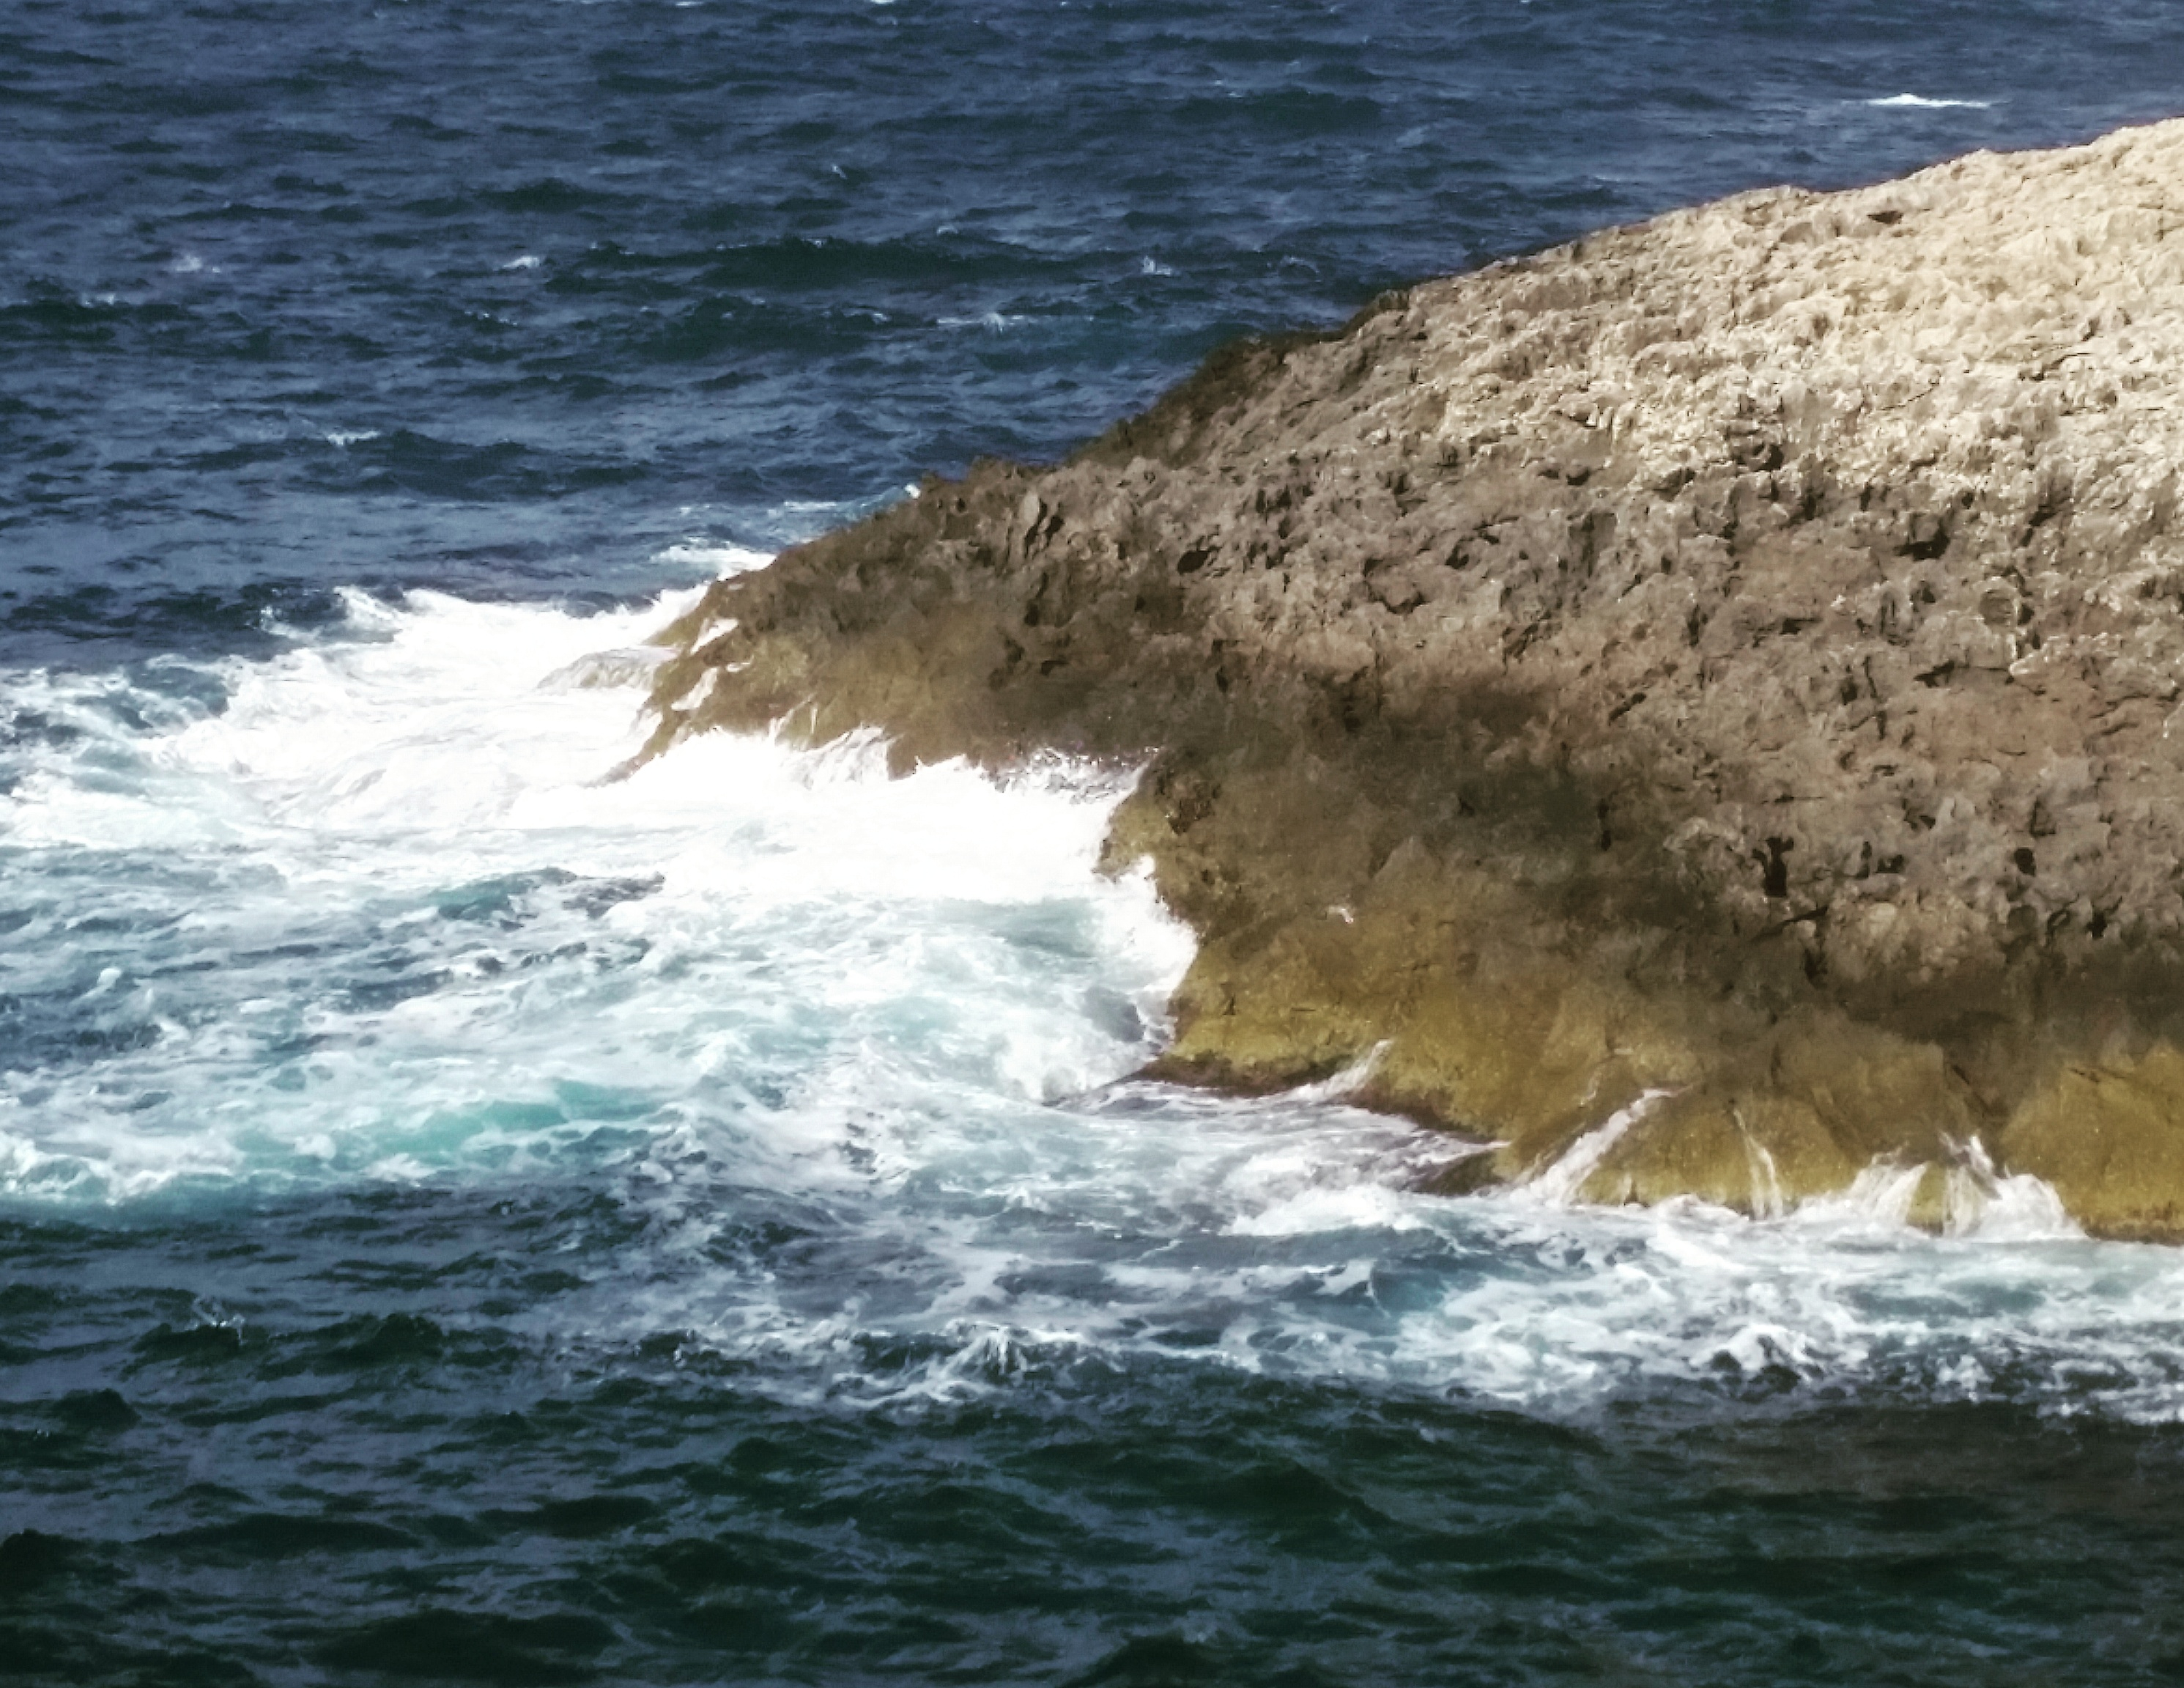 Wild water at Blue Grotto